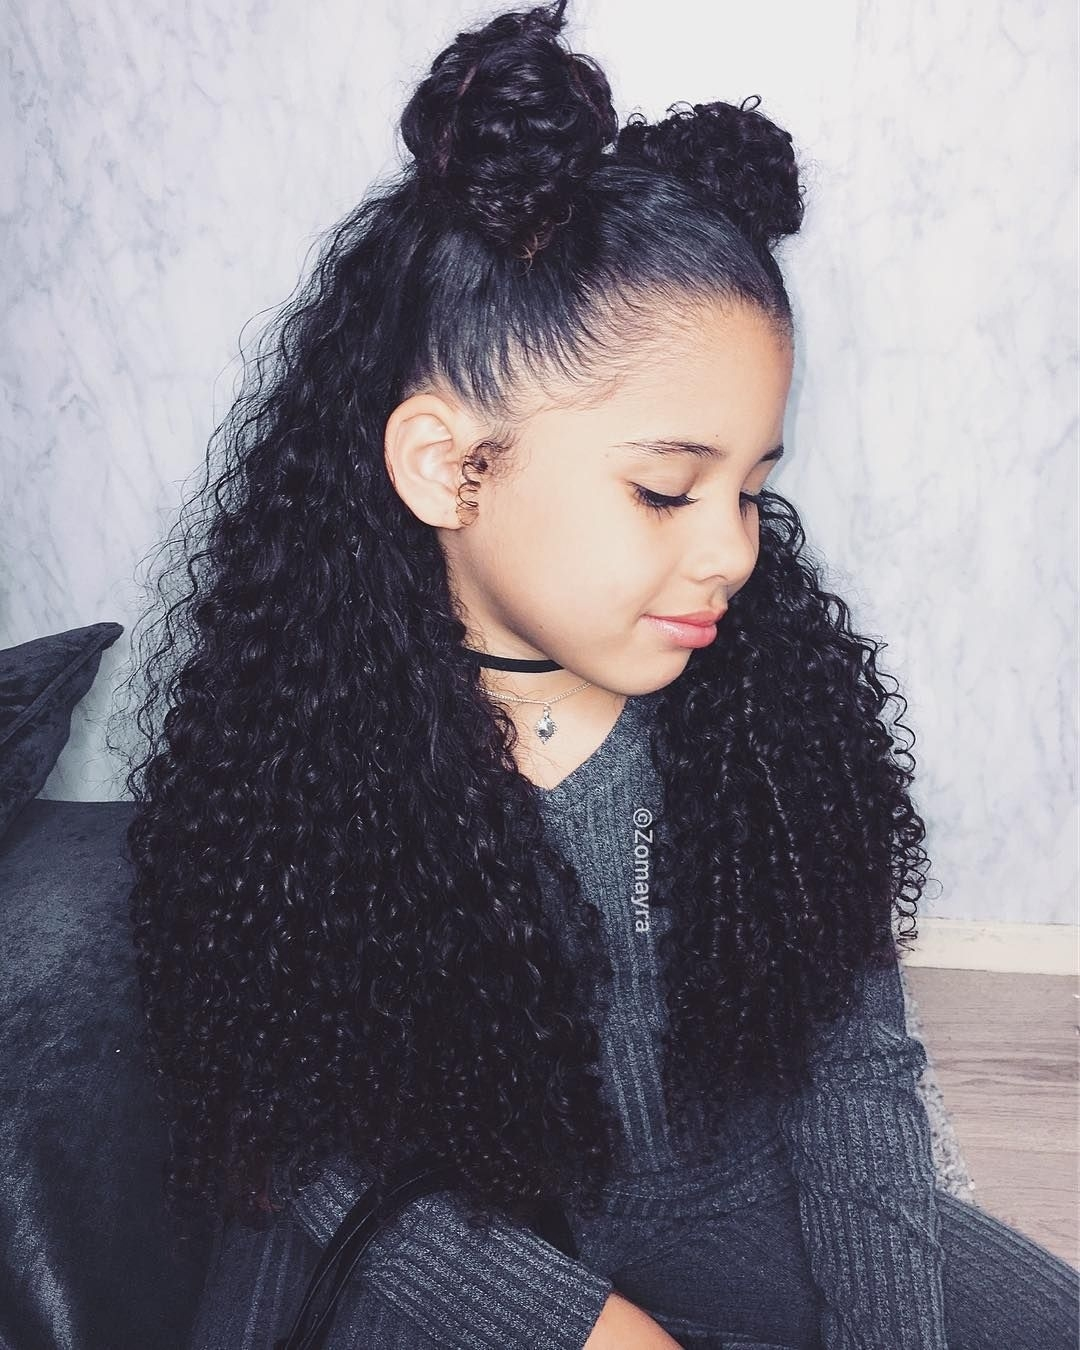 Pin By Omanee Gipson On Future In 2019   Mixed Curly Hair with regard to Little Mixed Girls Curly Hairstyles